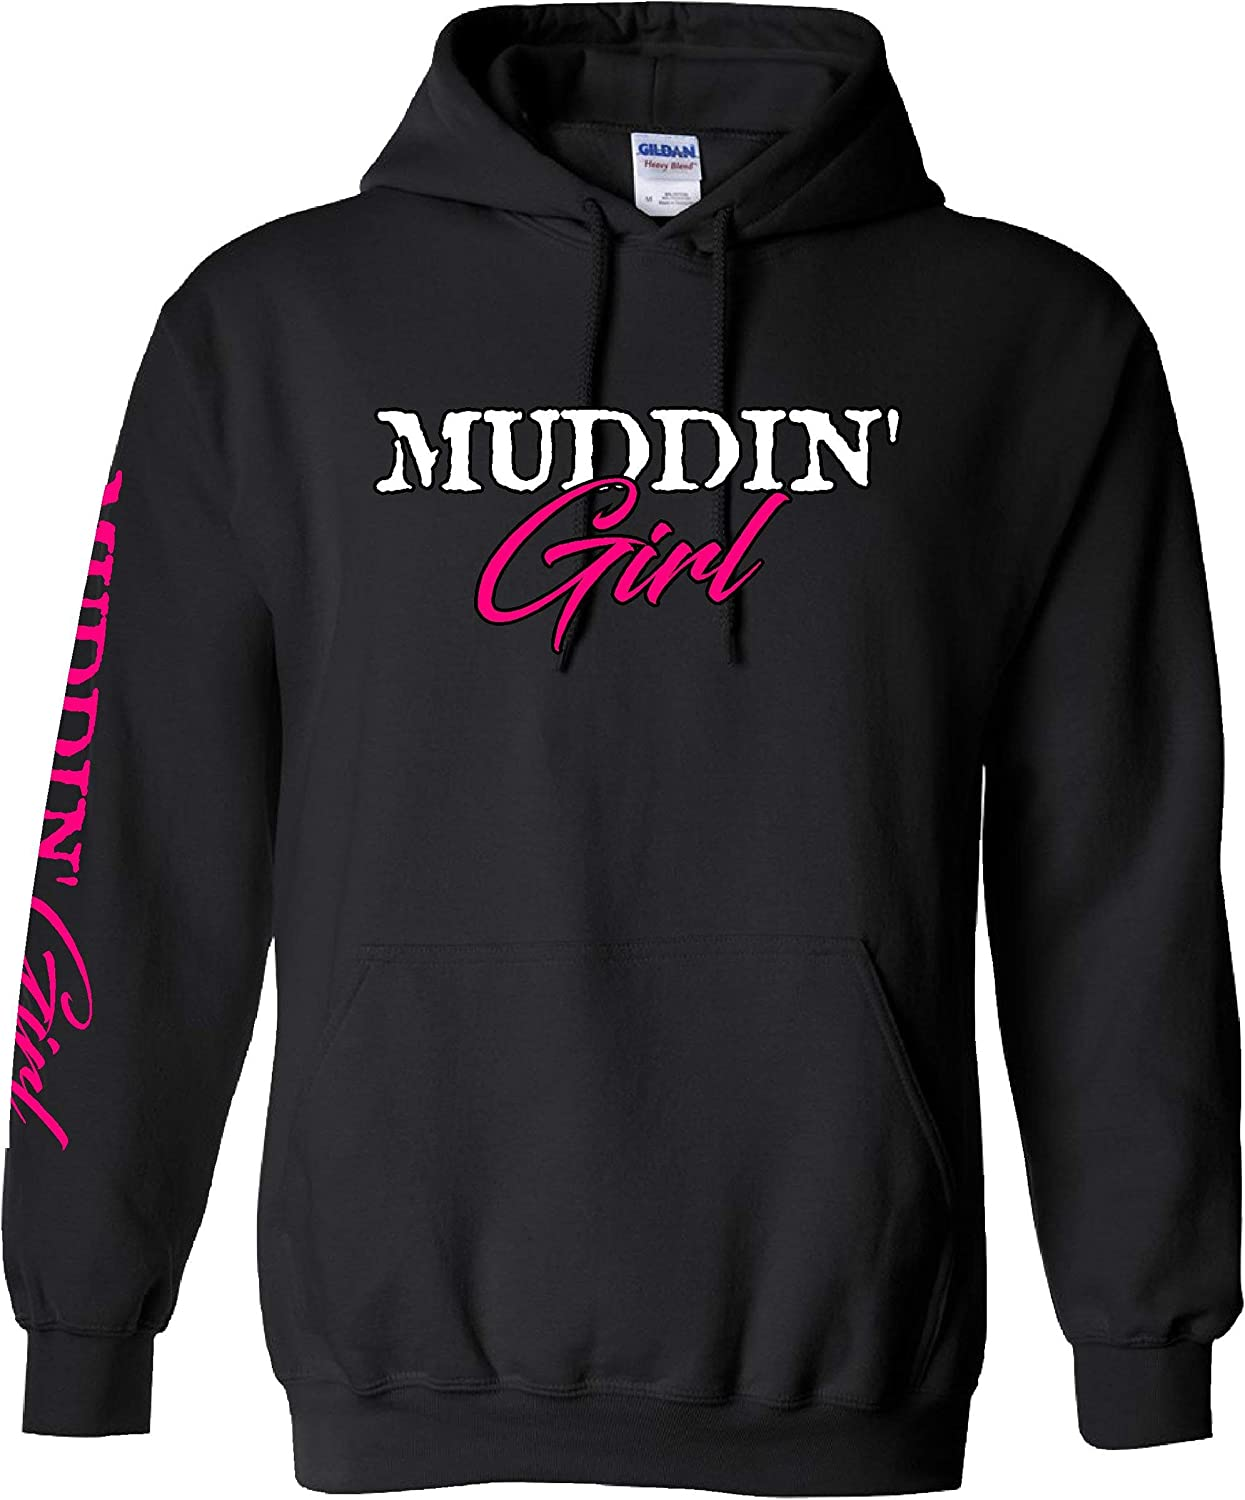 Extreme Muddin Girl On on a Black Hoodie